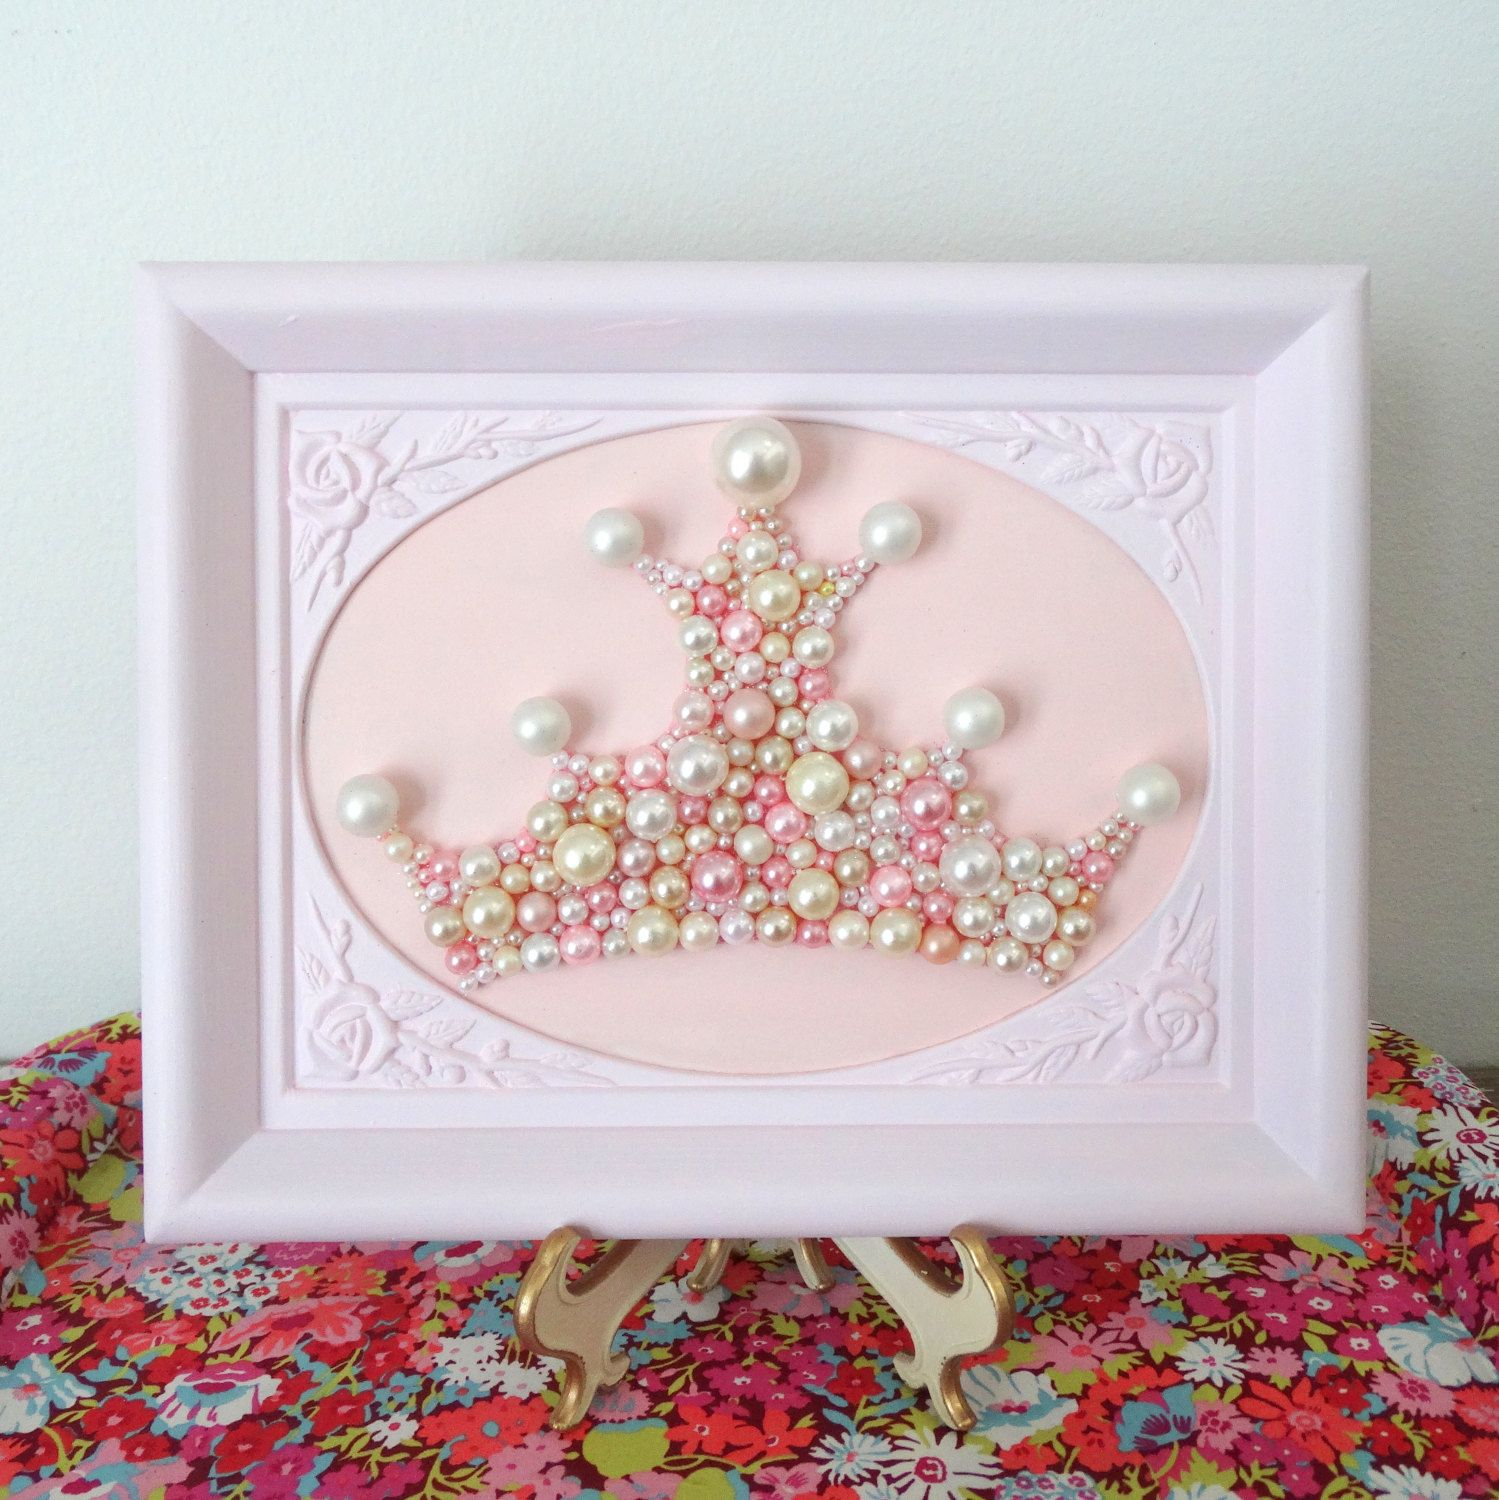 Princess crown wall art pearl mosaic rose pink ornate framed art princess crown wall art pearl mosaic rose pink ornate framed art girls nursery amipublicfo Image collections